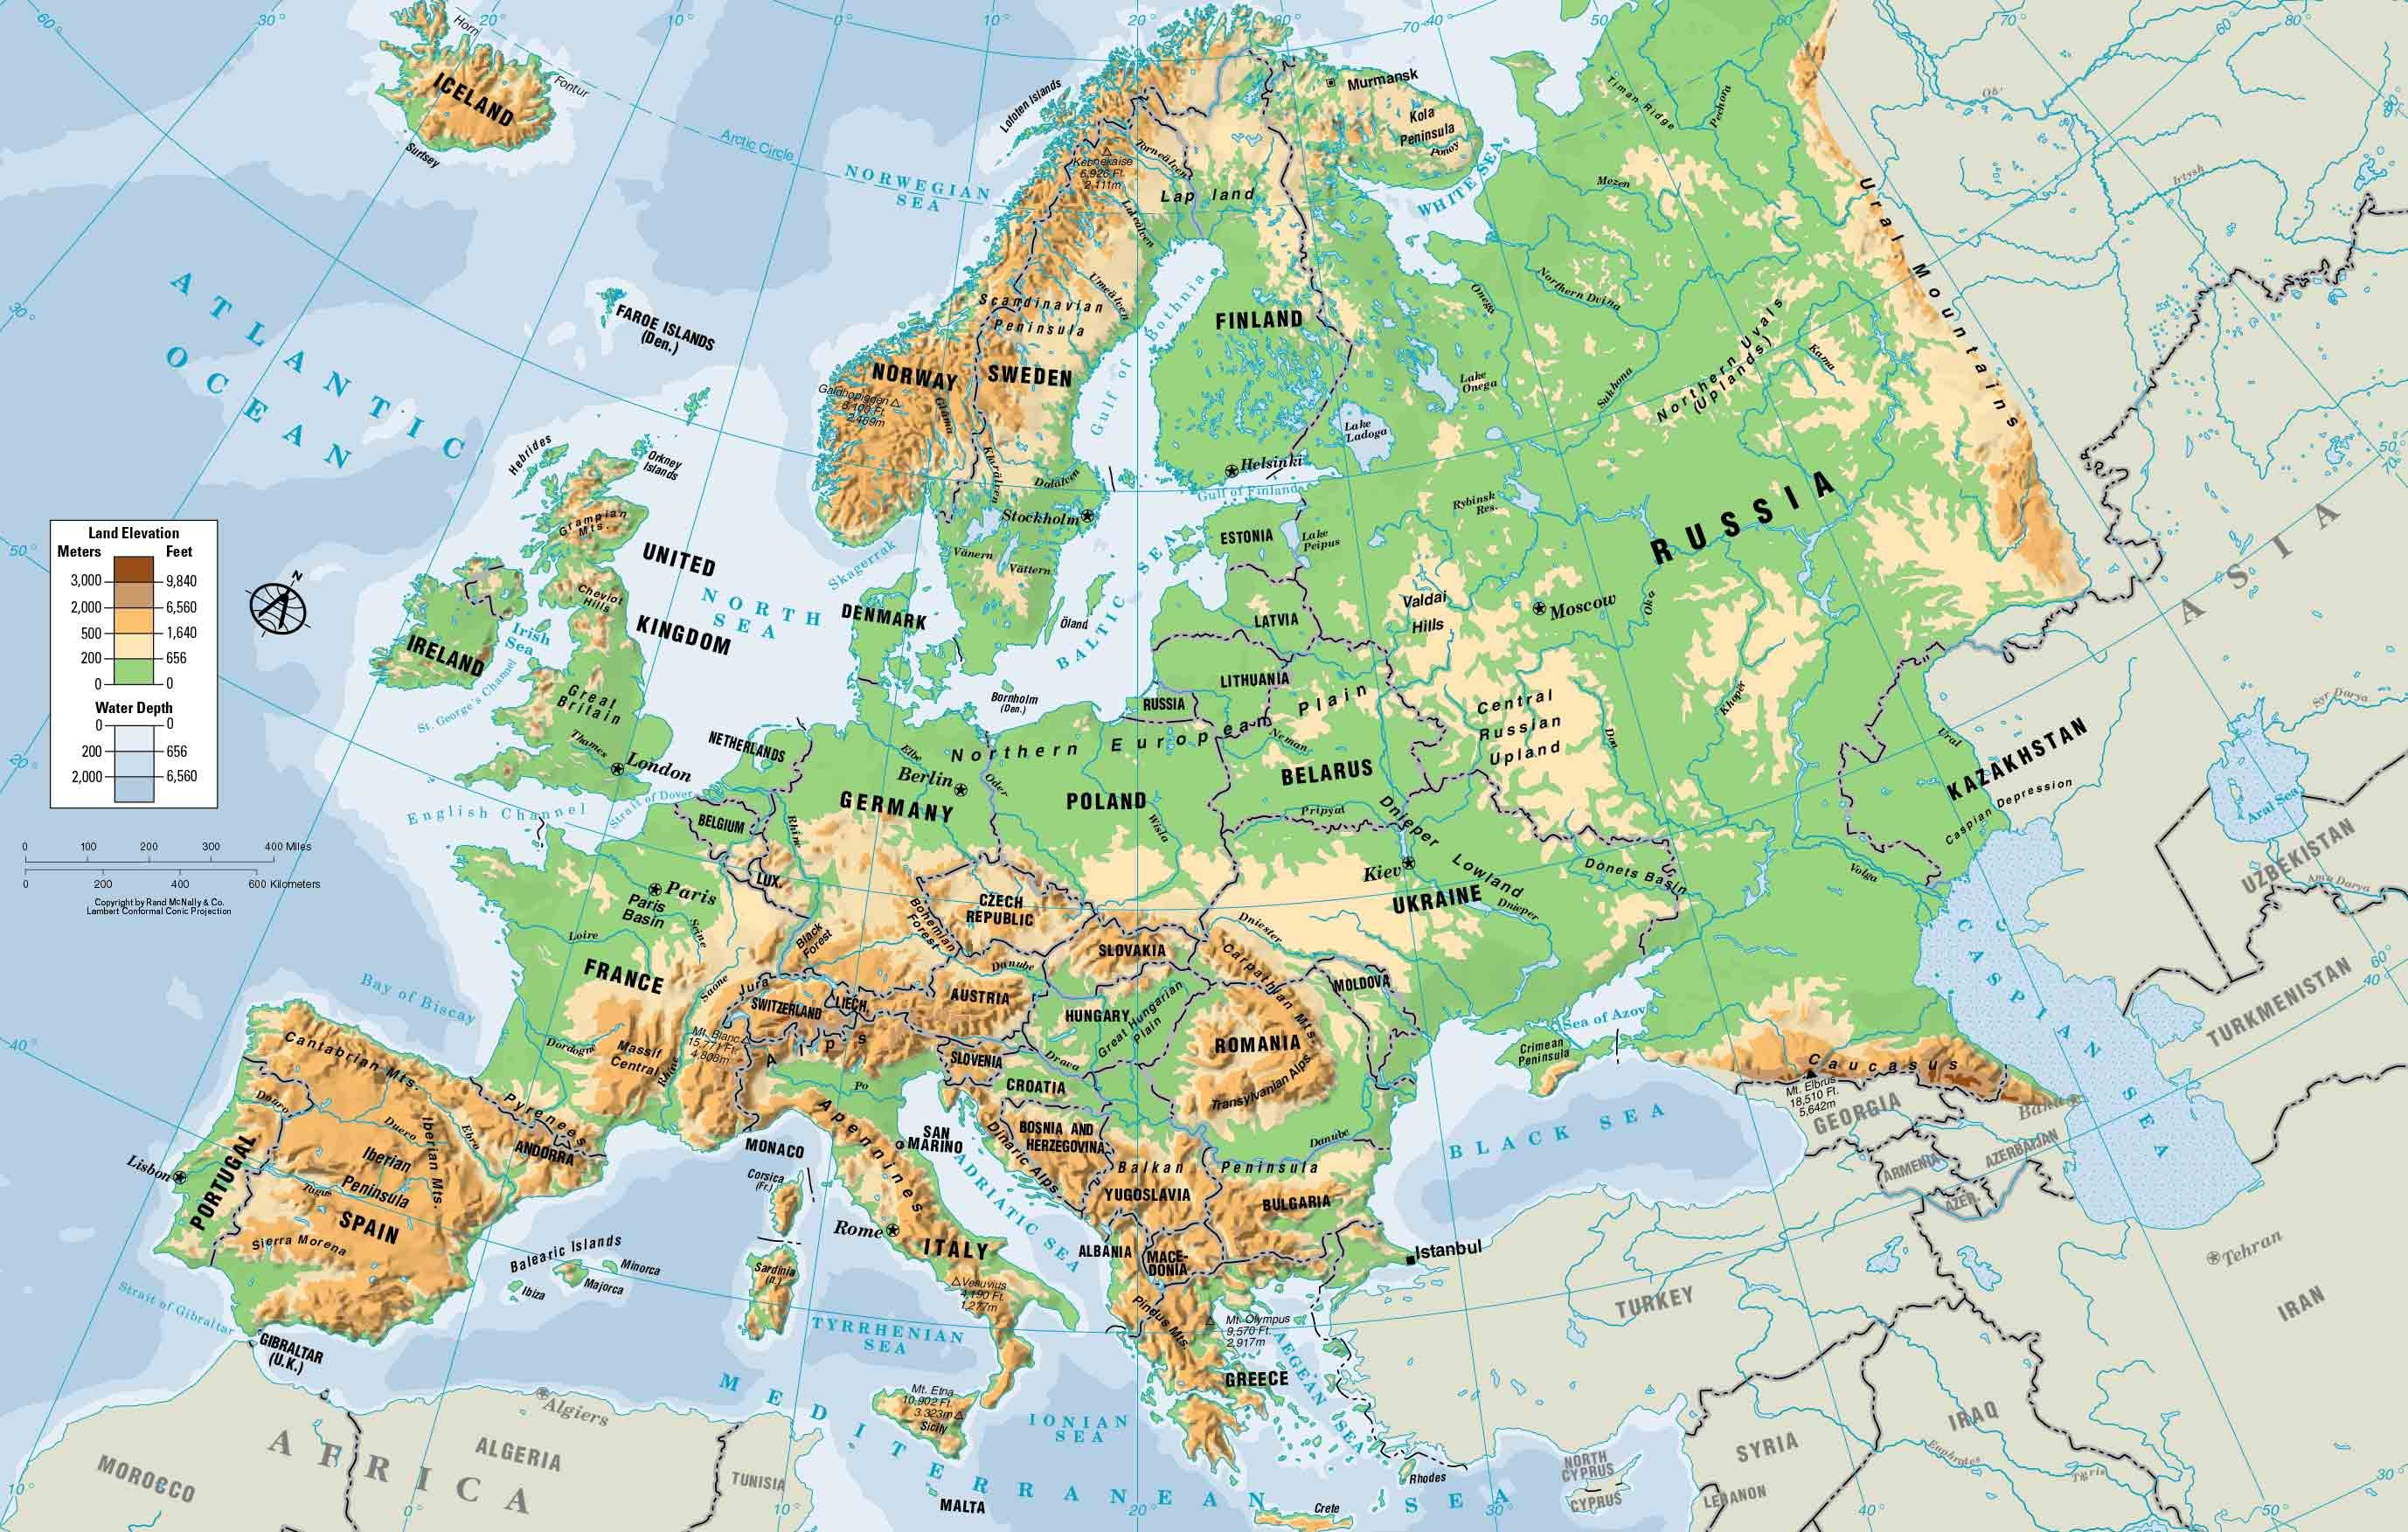 geography map of europe Place   World War I and the Five Themes of Geography